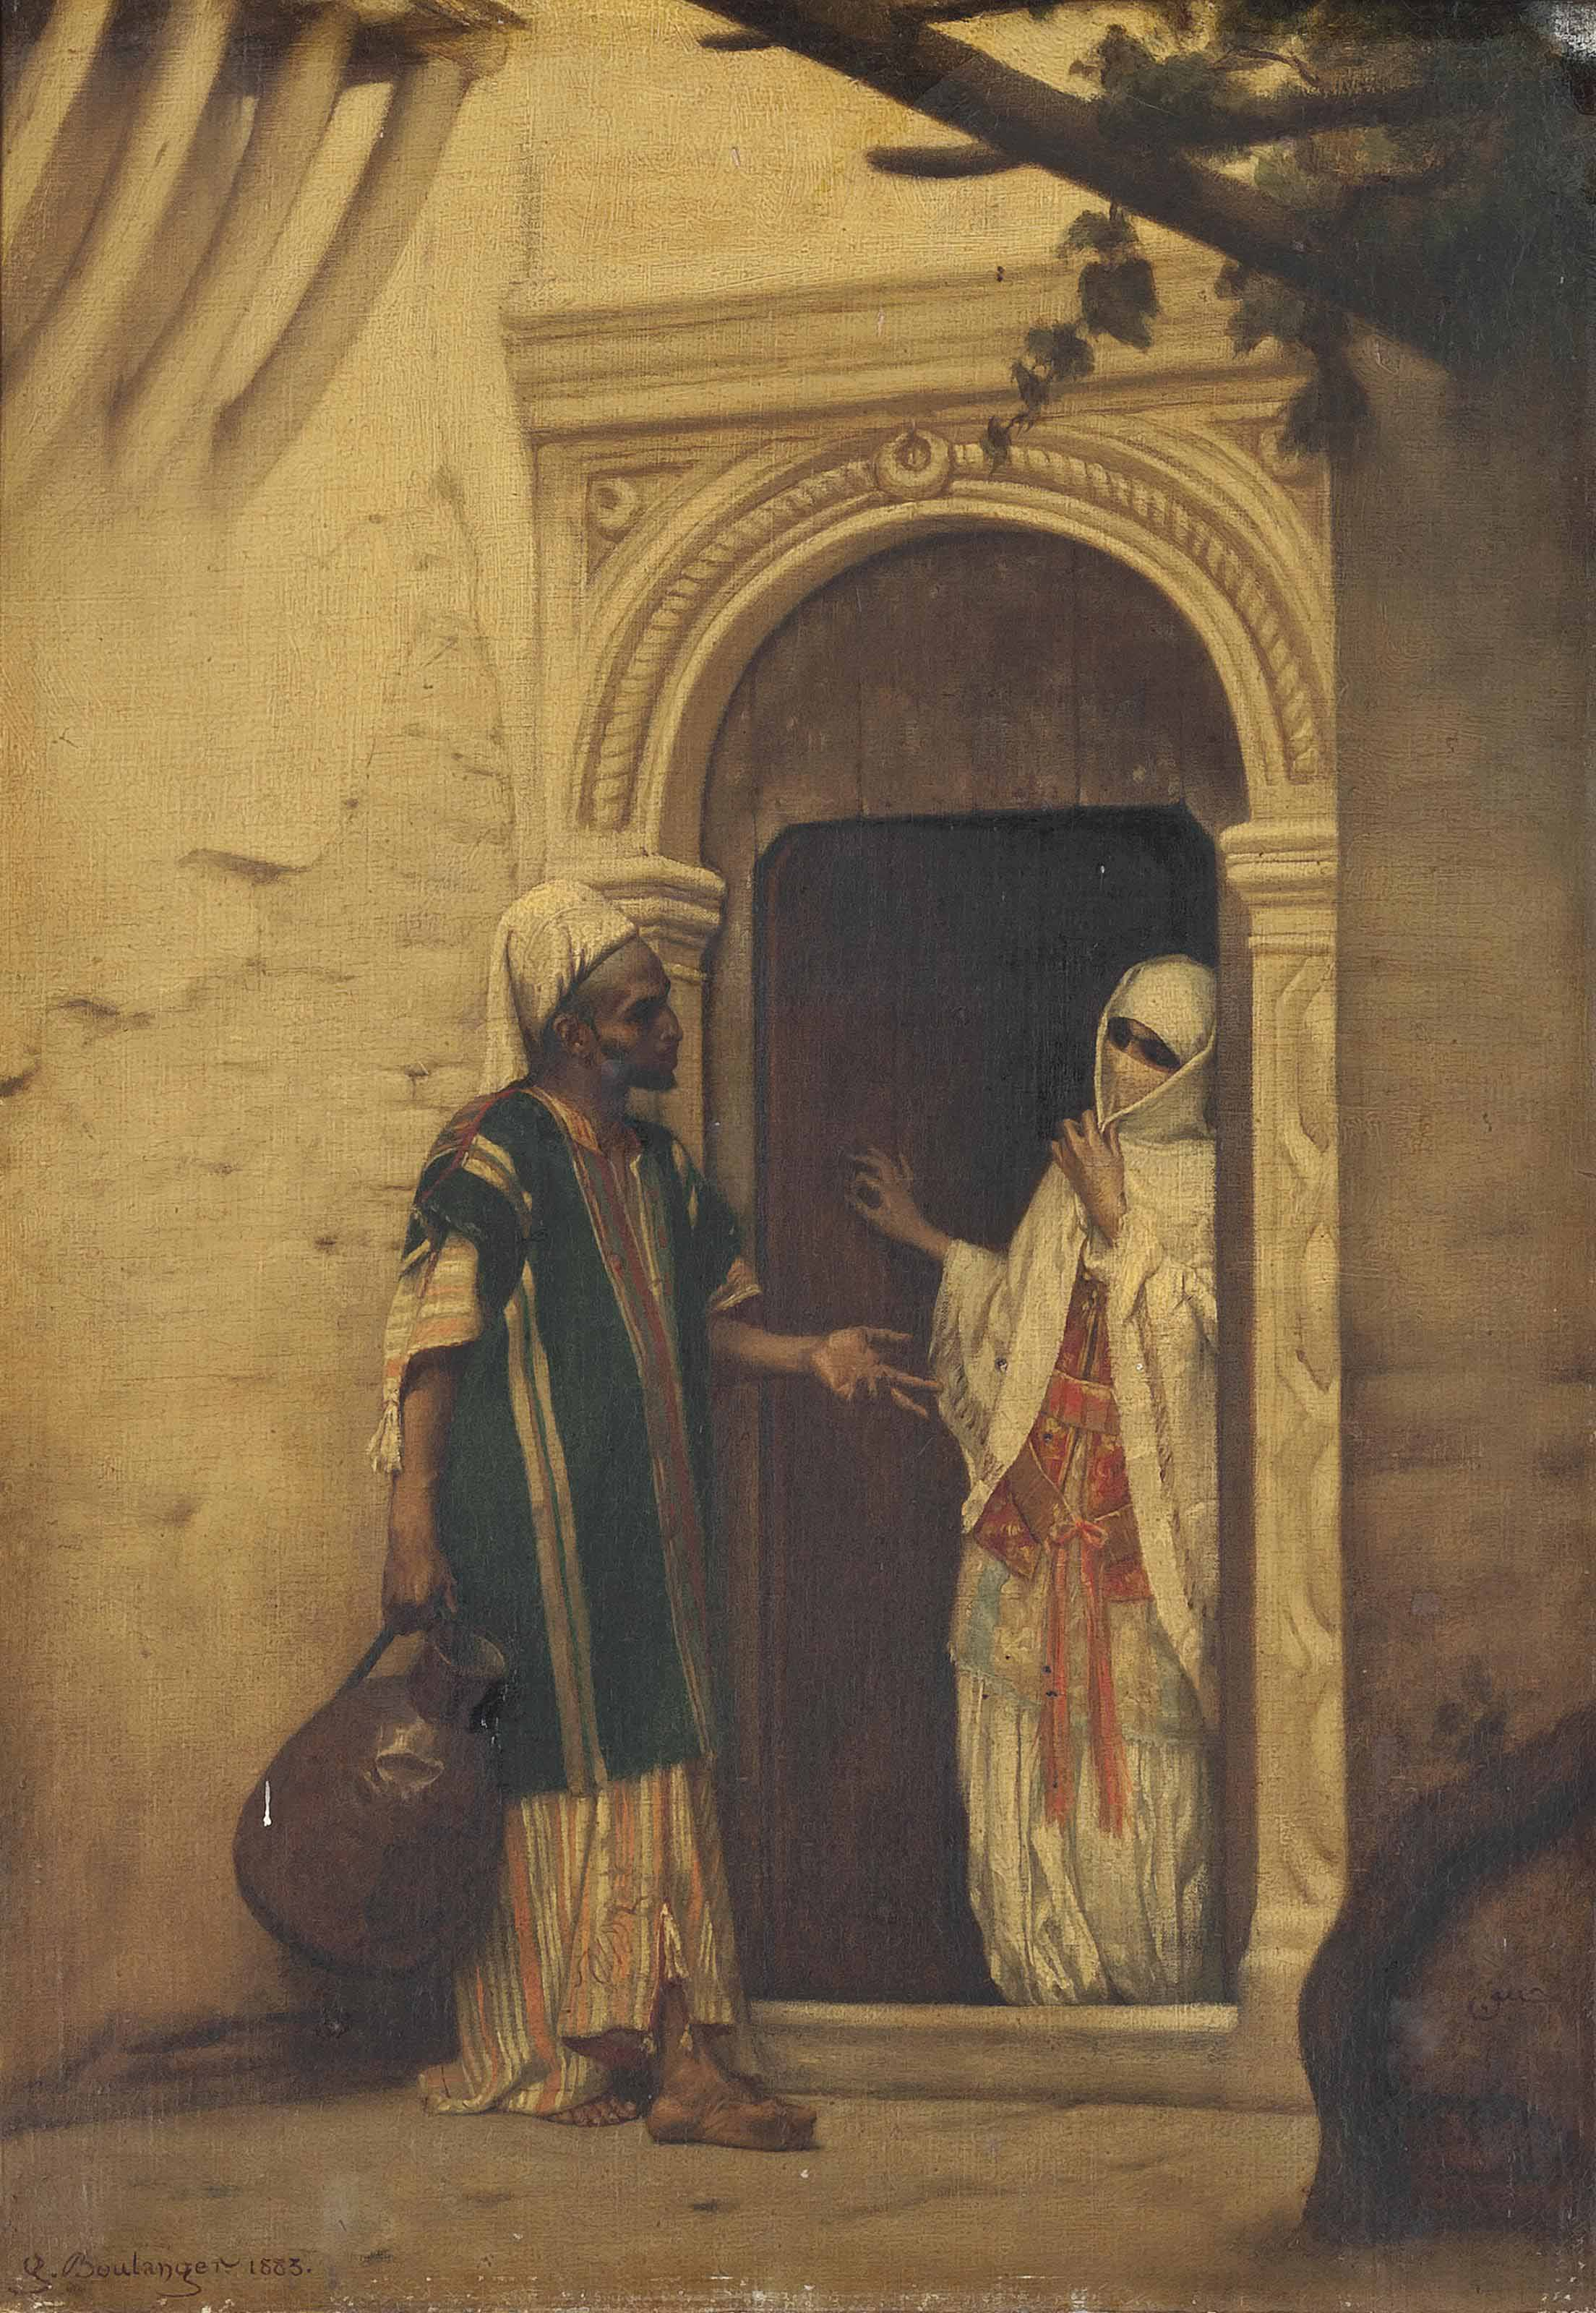 A water carrier at the harem entrance